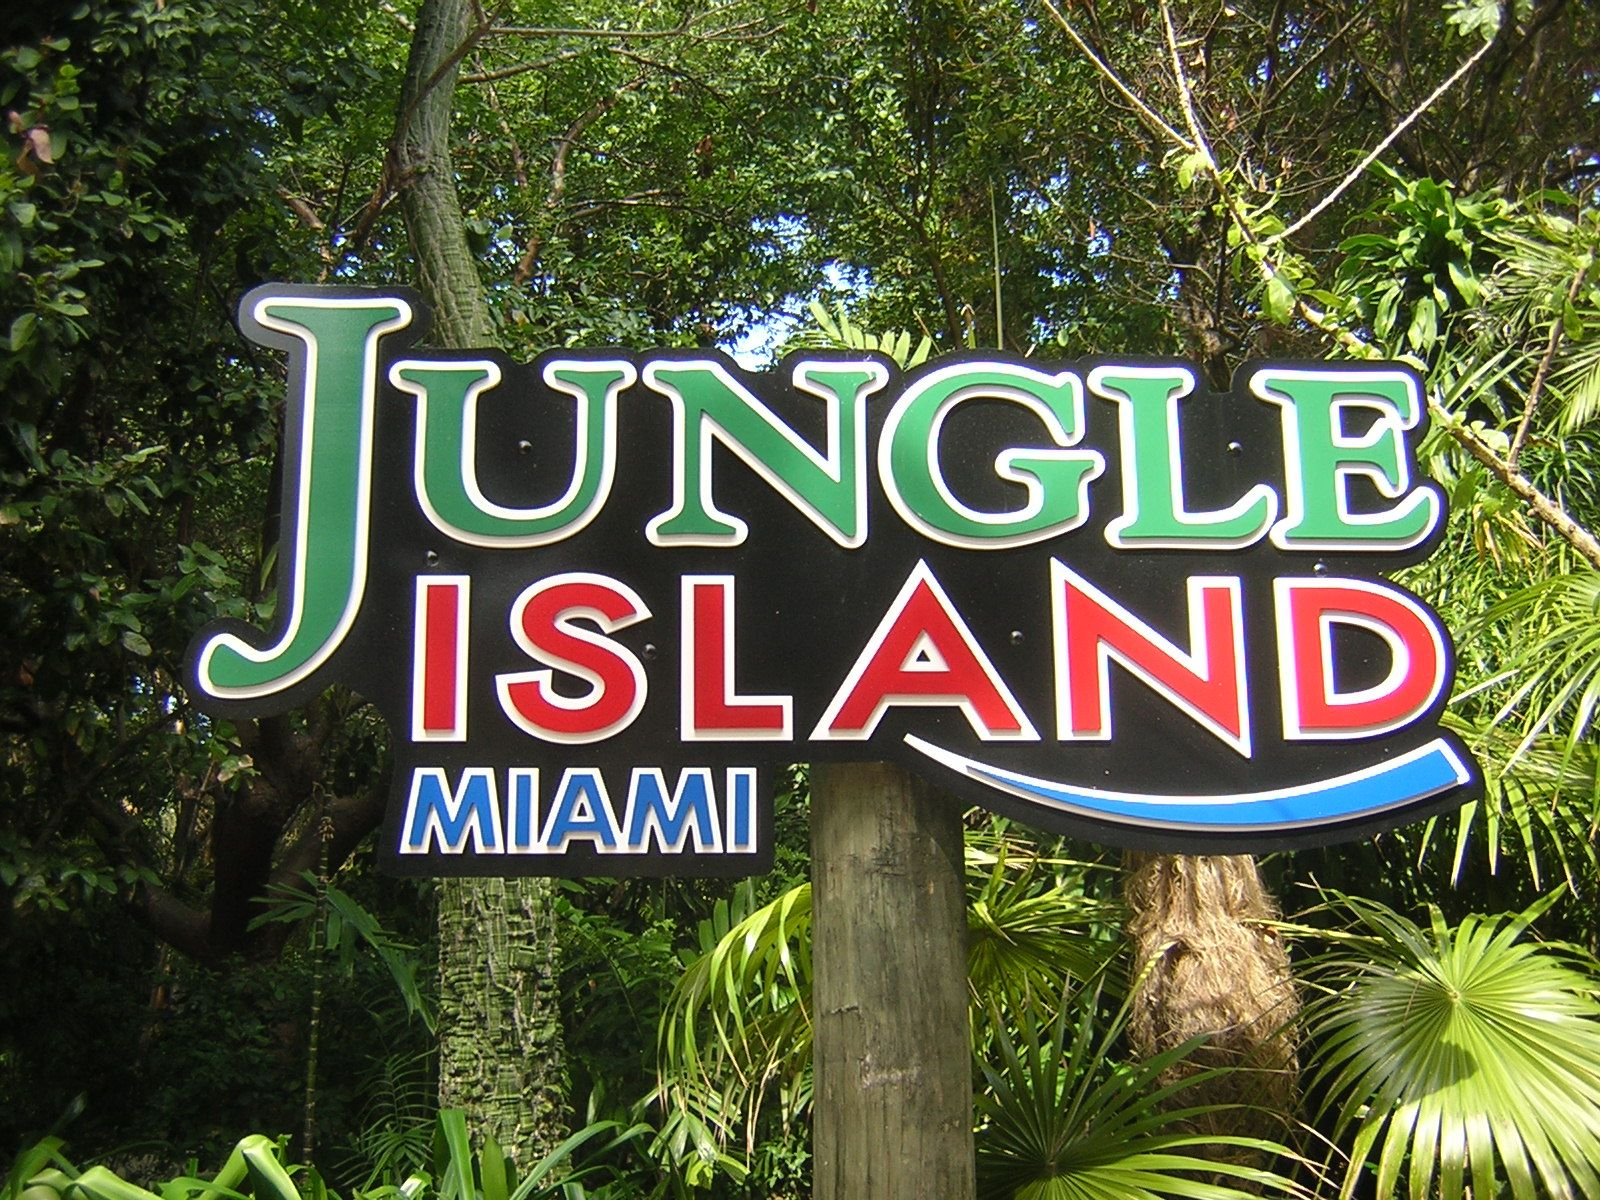 Take A Break In Jungle Island Miami Florida South Beach Field Trips Jungles